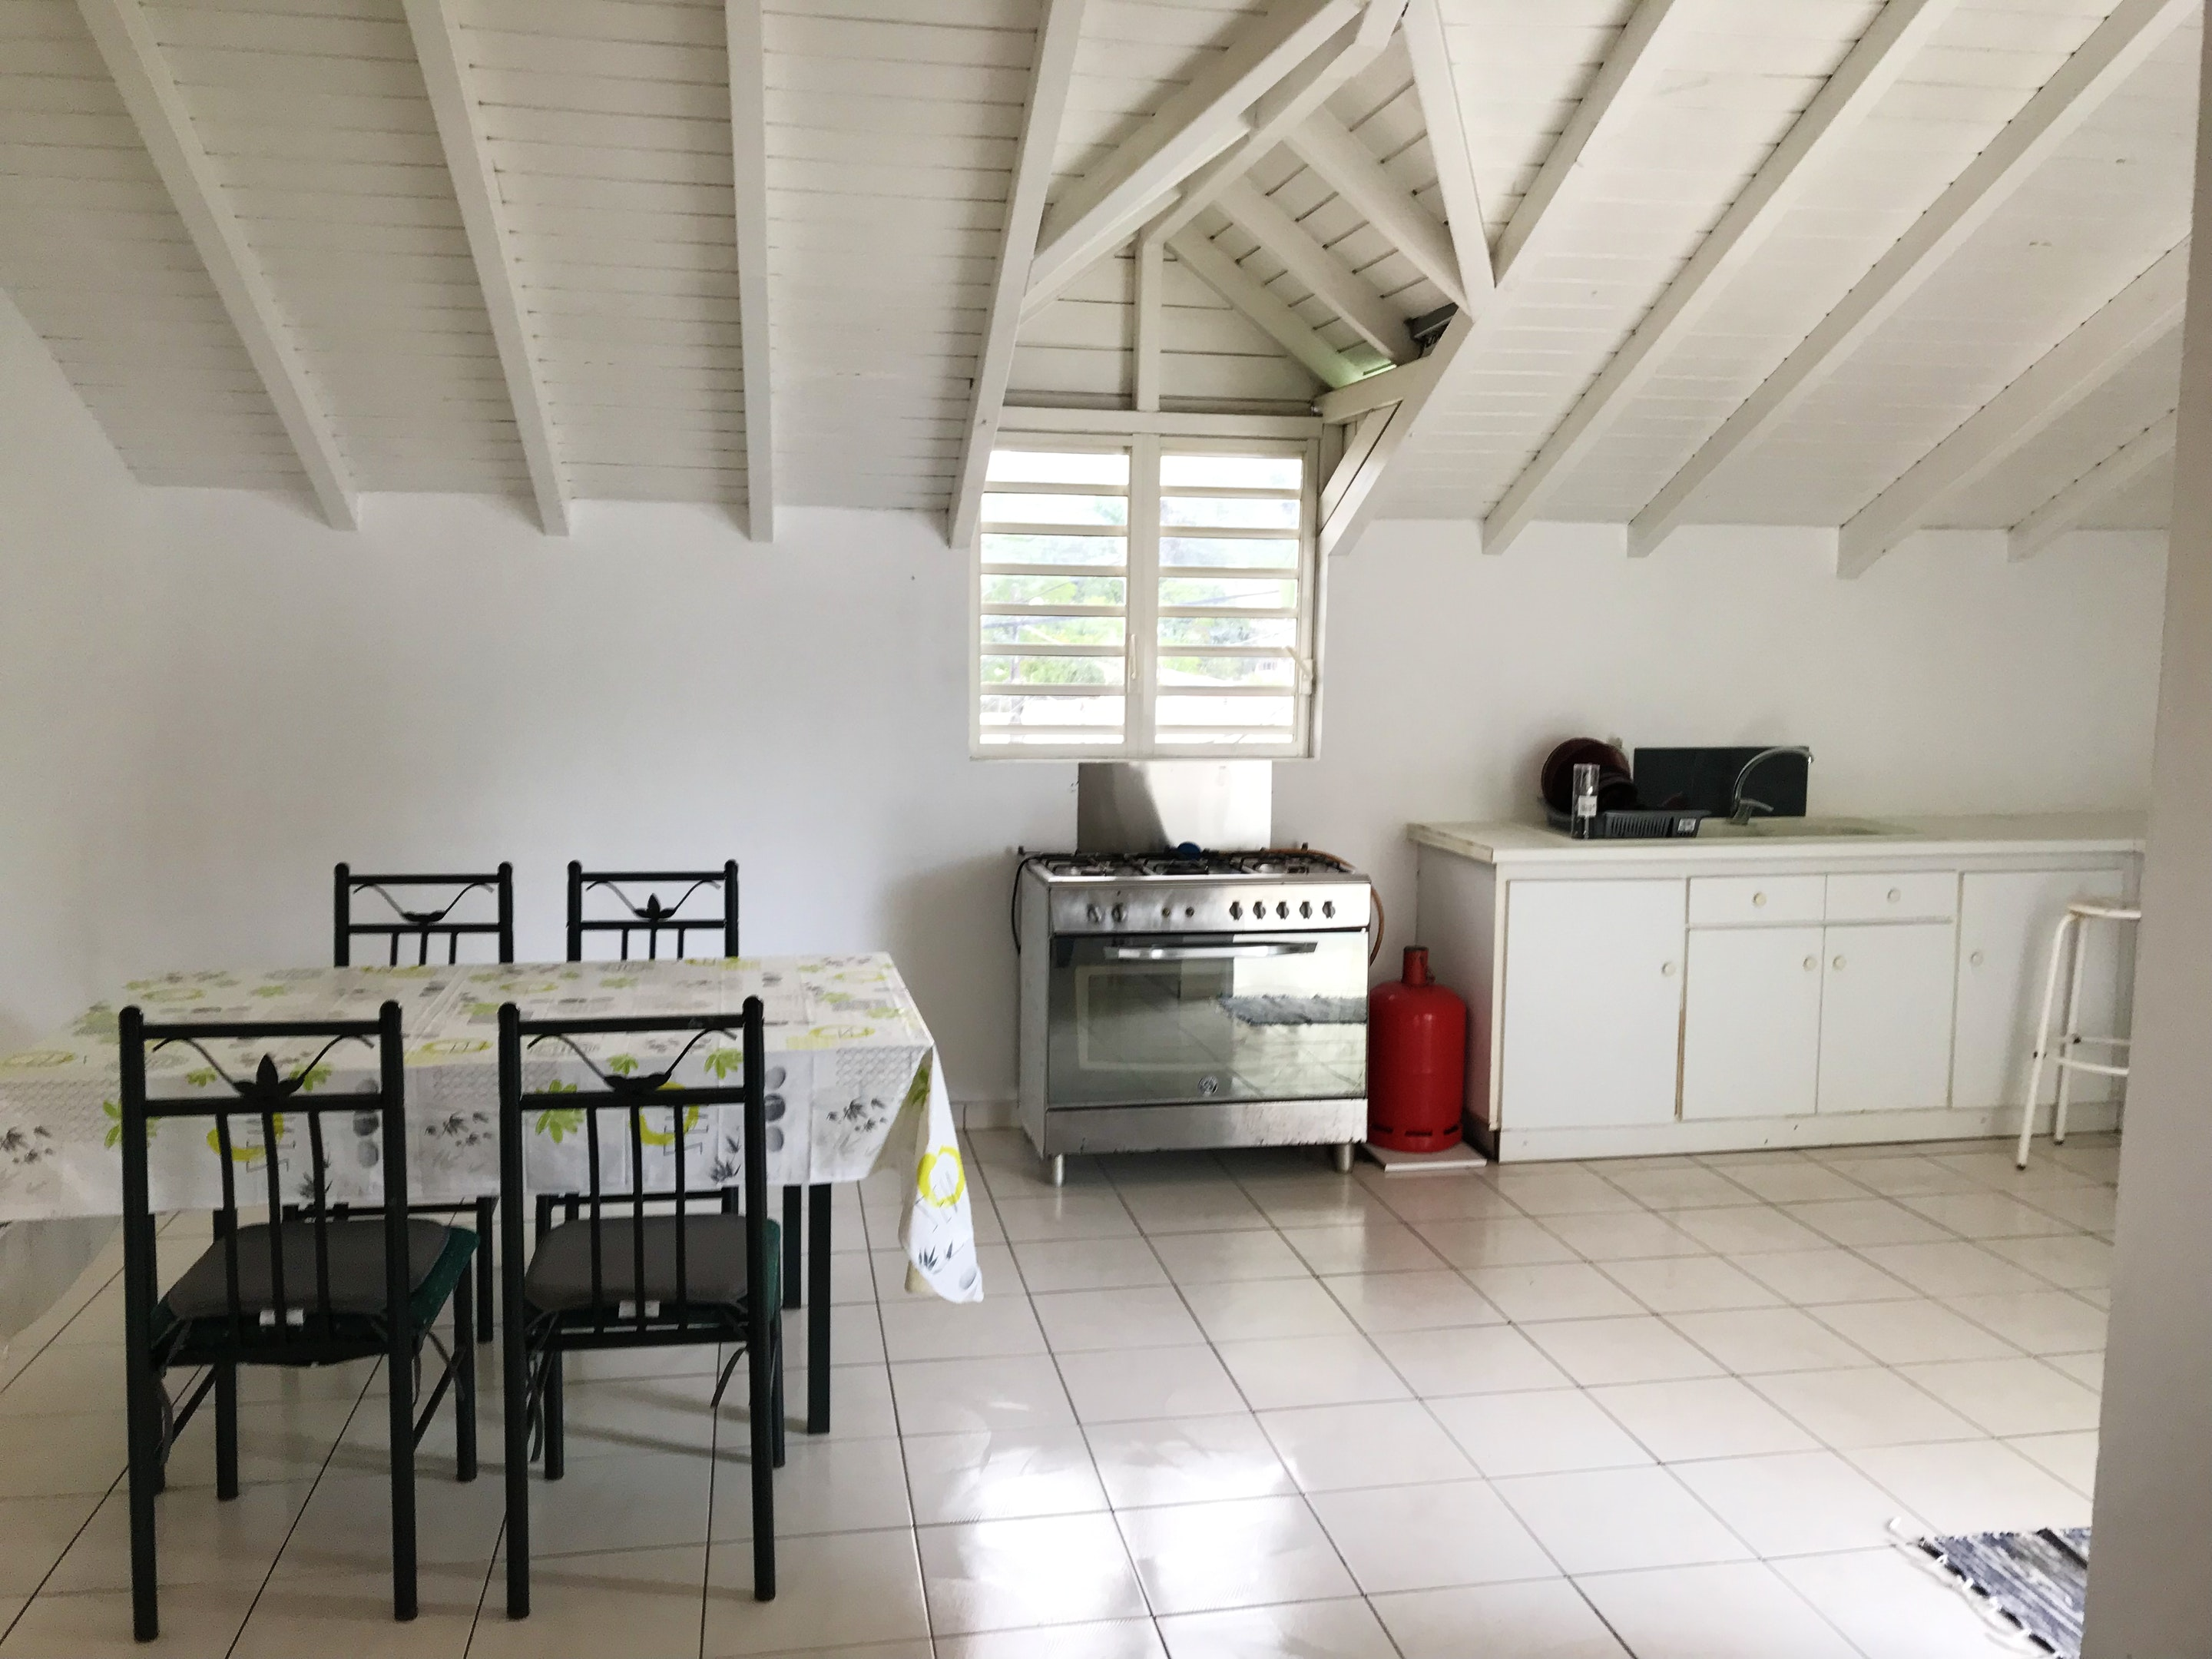 Immobilie mit 2 Schlafzimmern in Les Abymes mit sc Ferienhaus in Guadeloupe